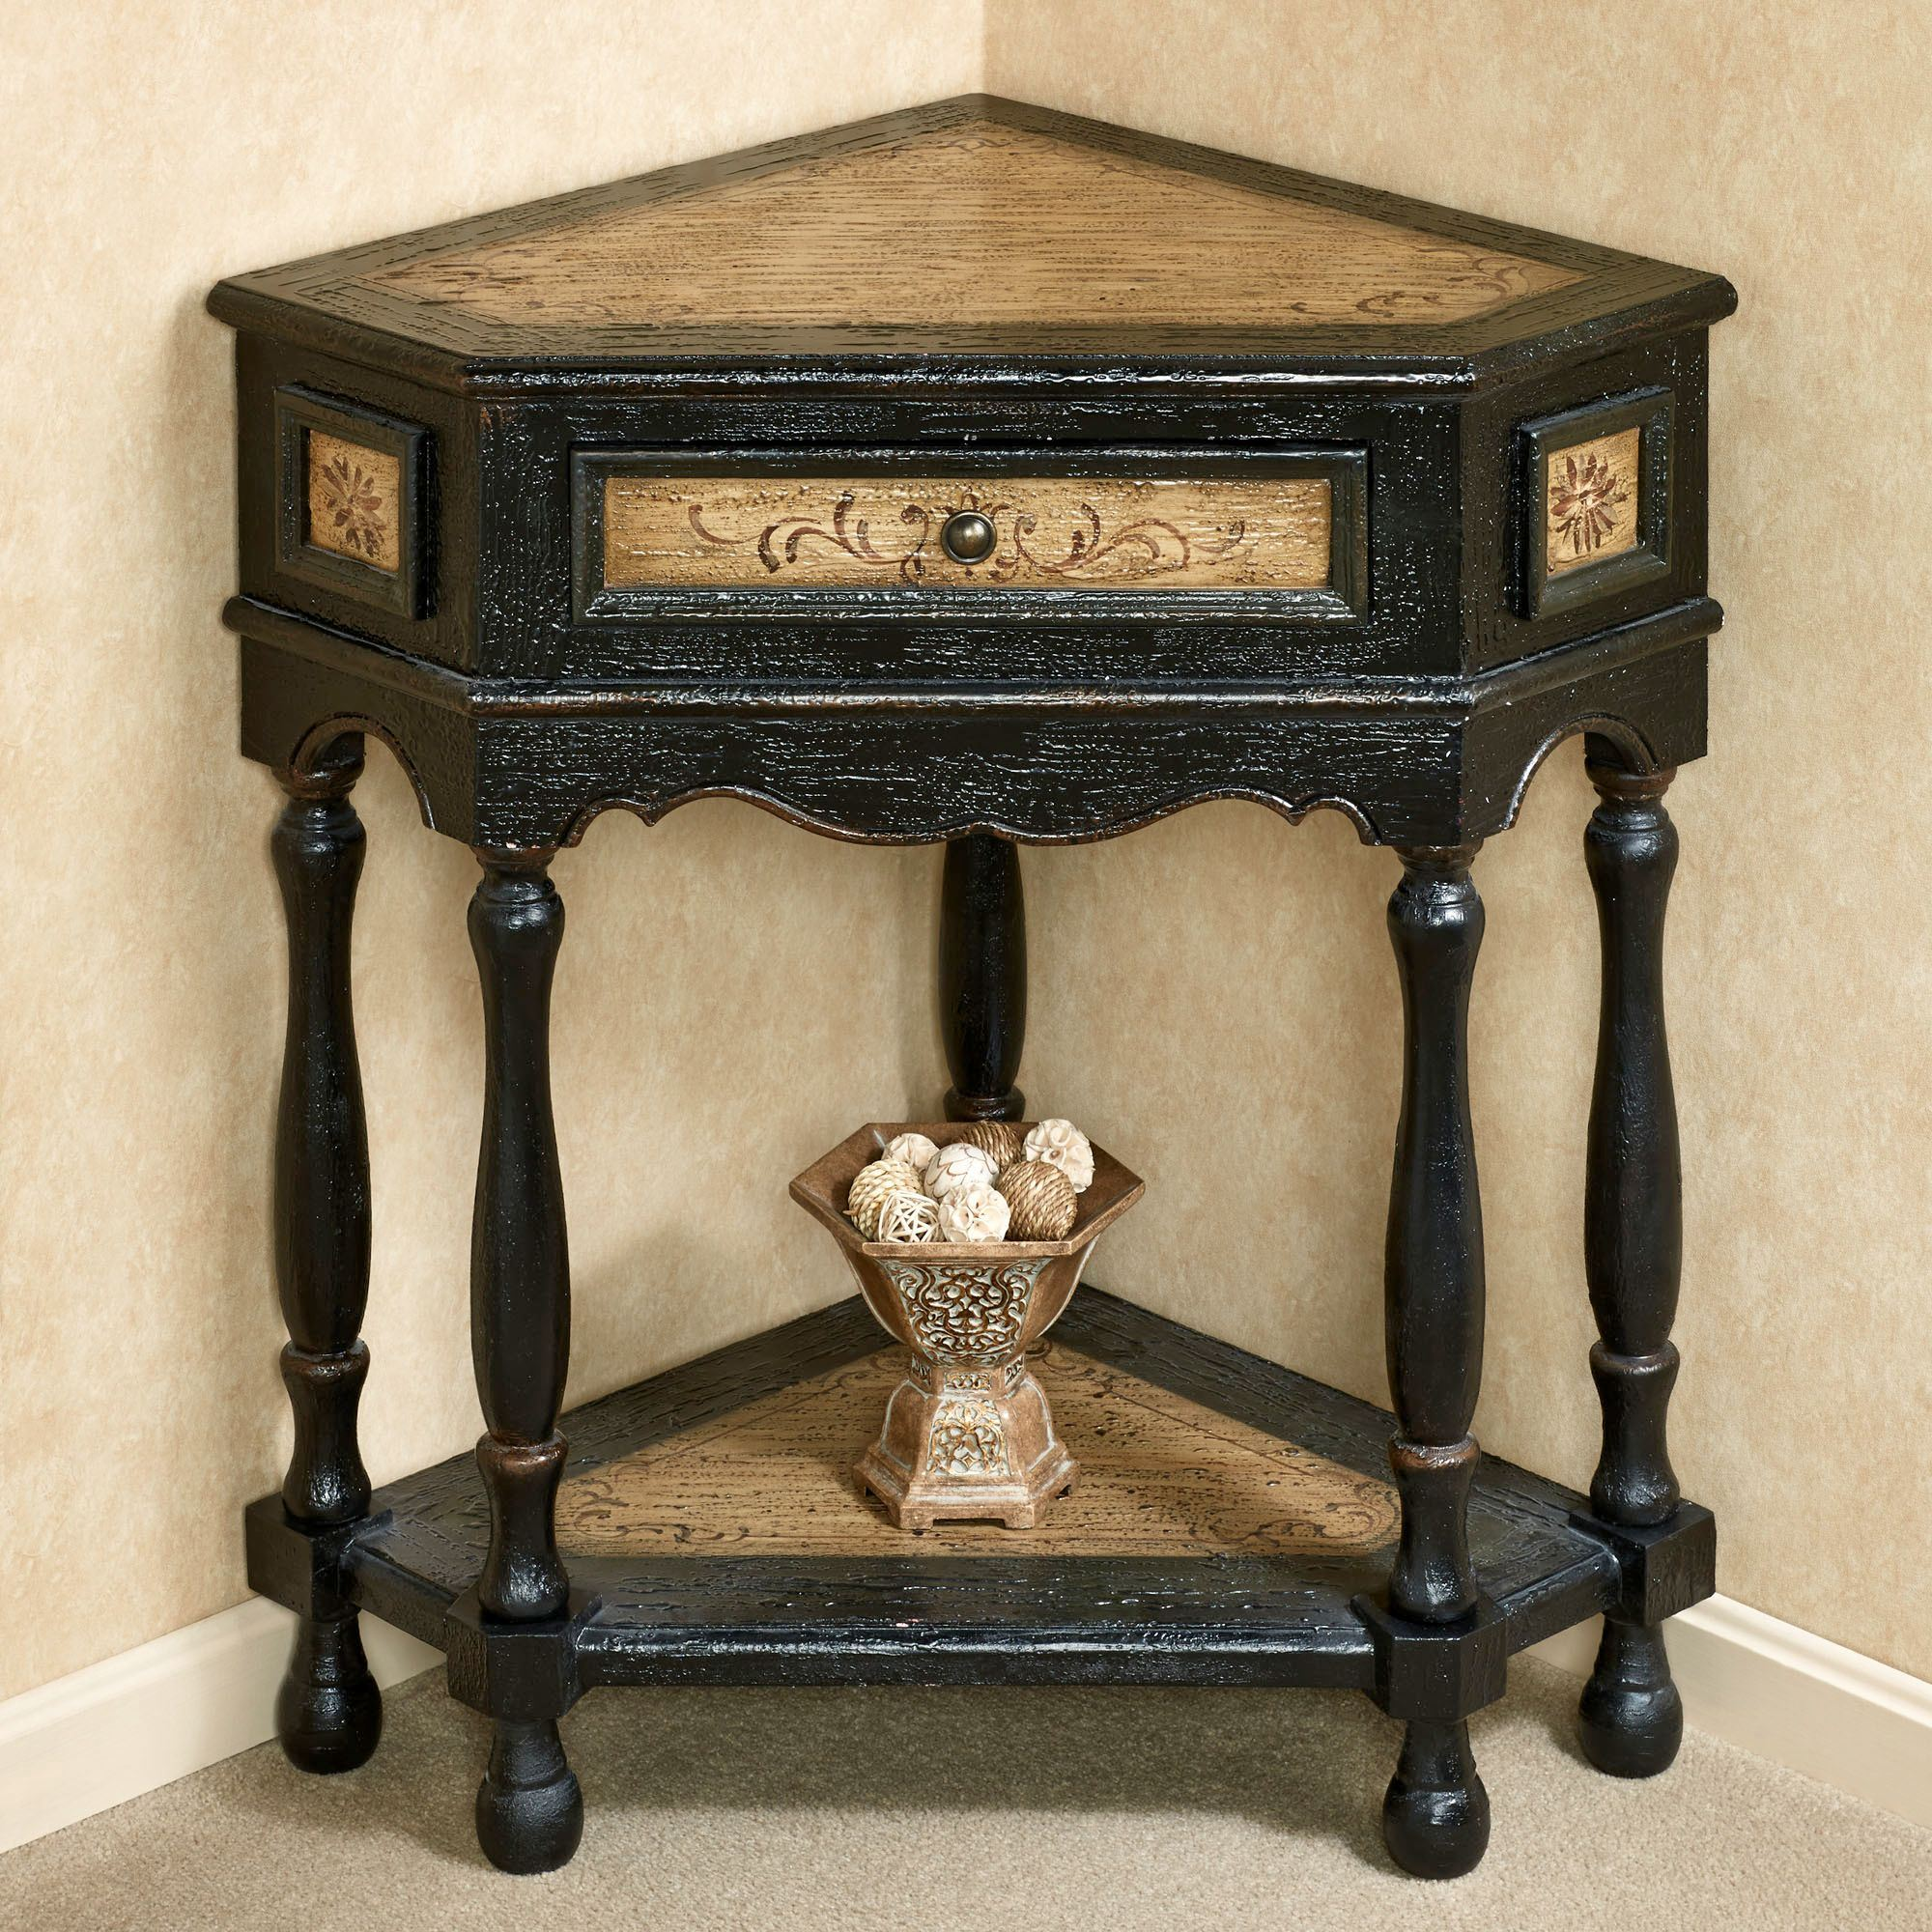 elmhurst black corner accent table with drawer drawers touch zoom set side tables furniture bedside charging station half round wall small moon hall wrought iron lamps light